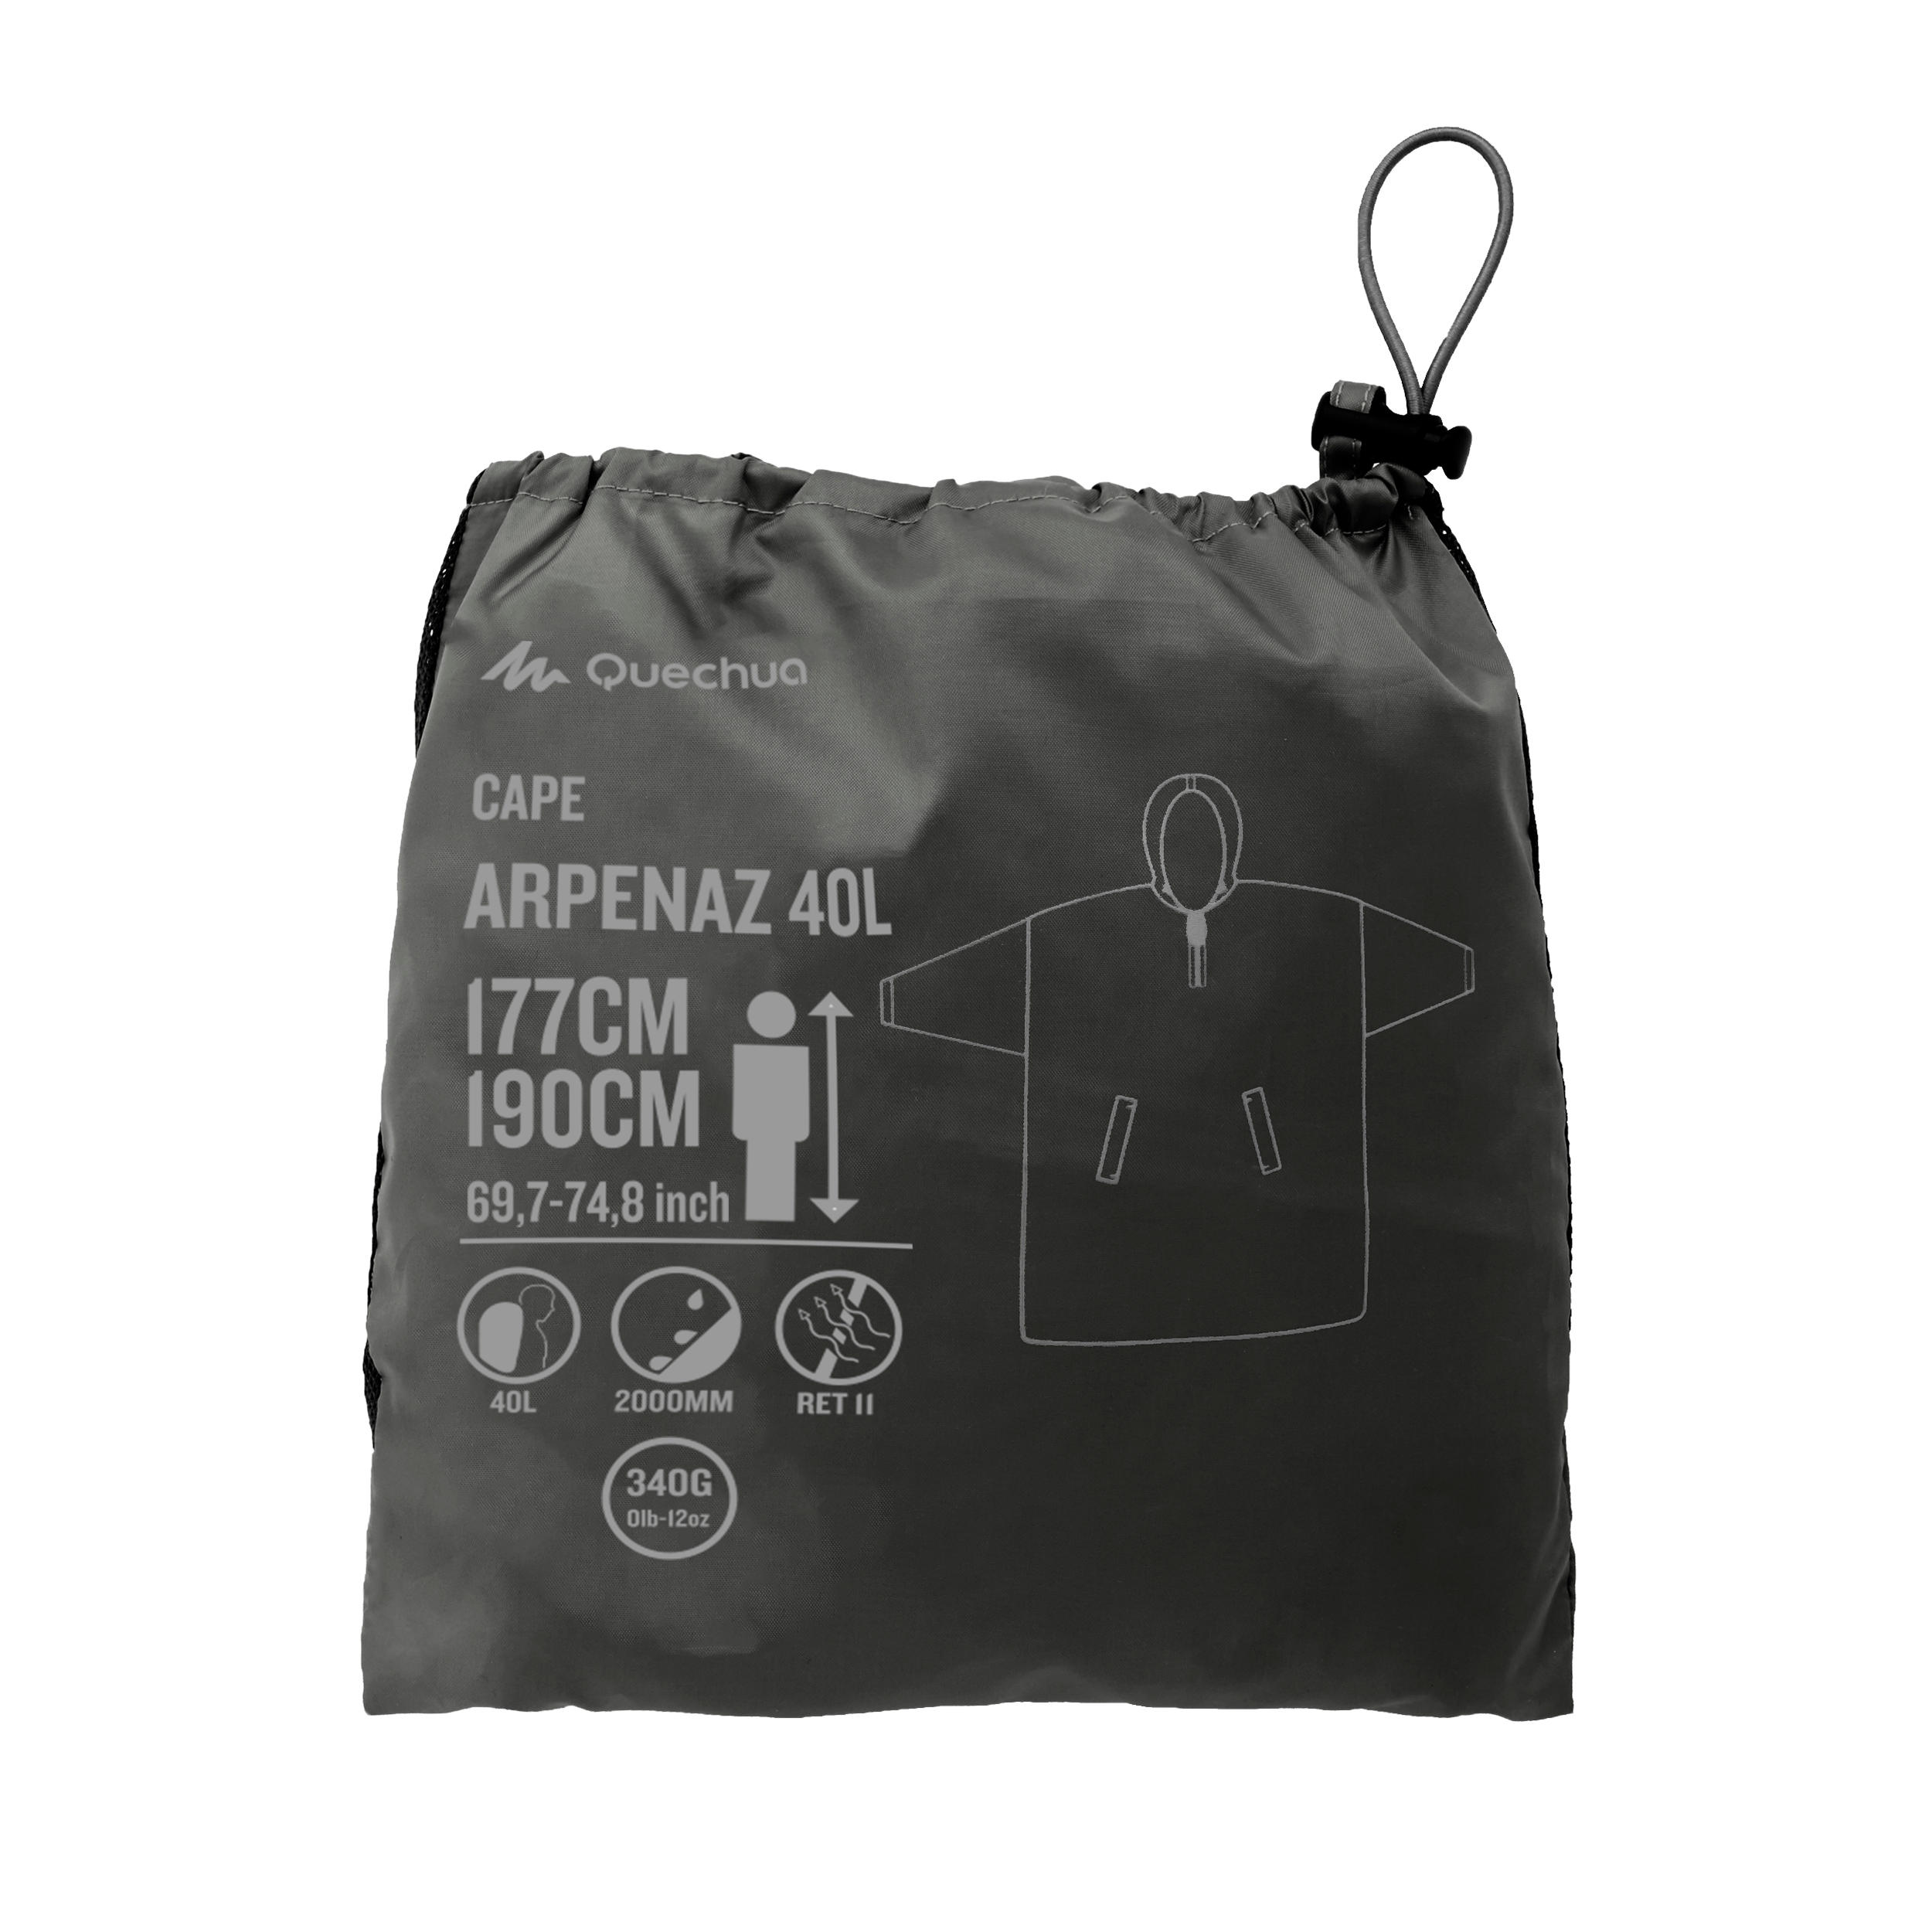 LAdultos Impermeable Arpenaz Oscuro Lluvia 40 Chm Poncho Gris oQhrdCtsxB